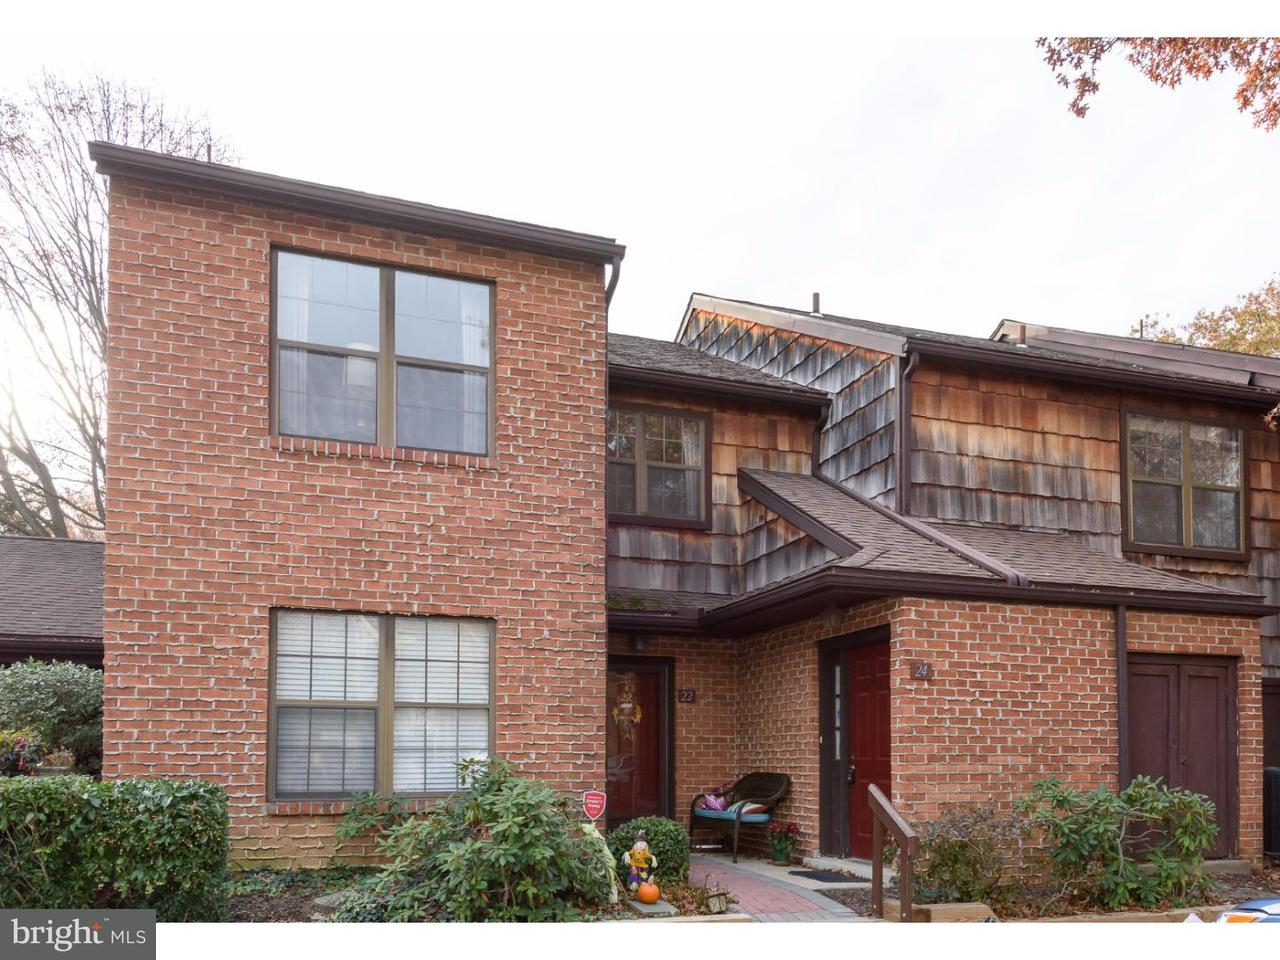 Single Family Home for Sale at 24 WITHERSPOON CT #127 Chesterbrook, Pennsylvania 19087 United States